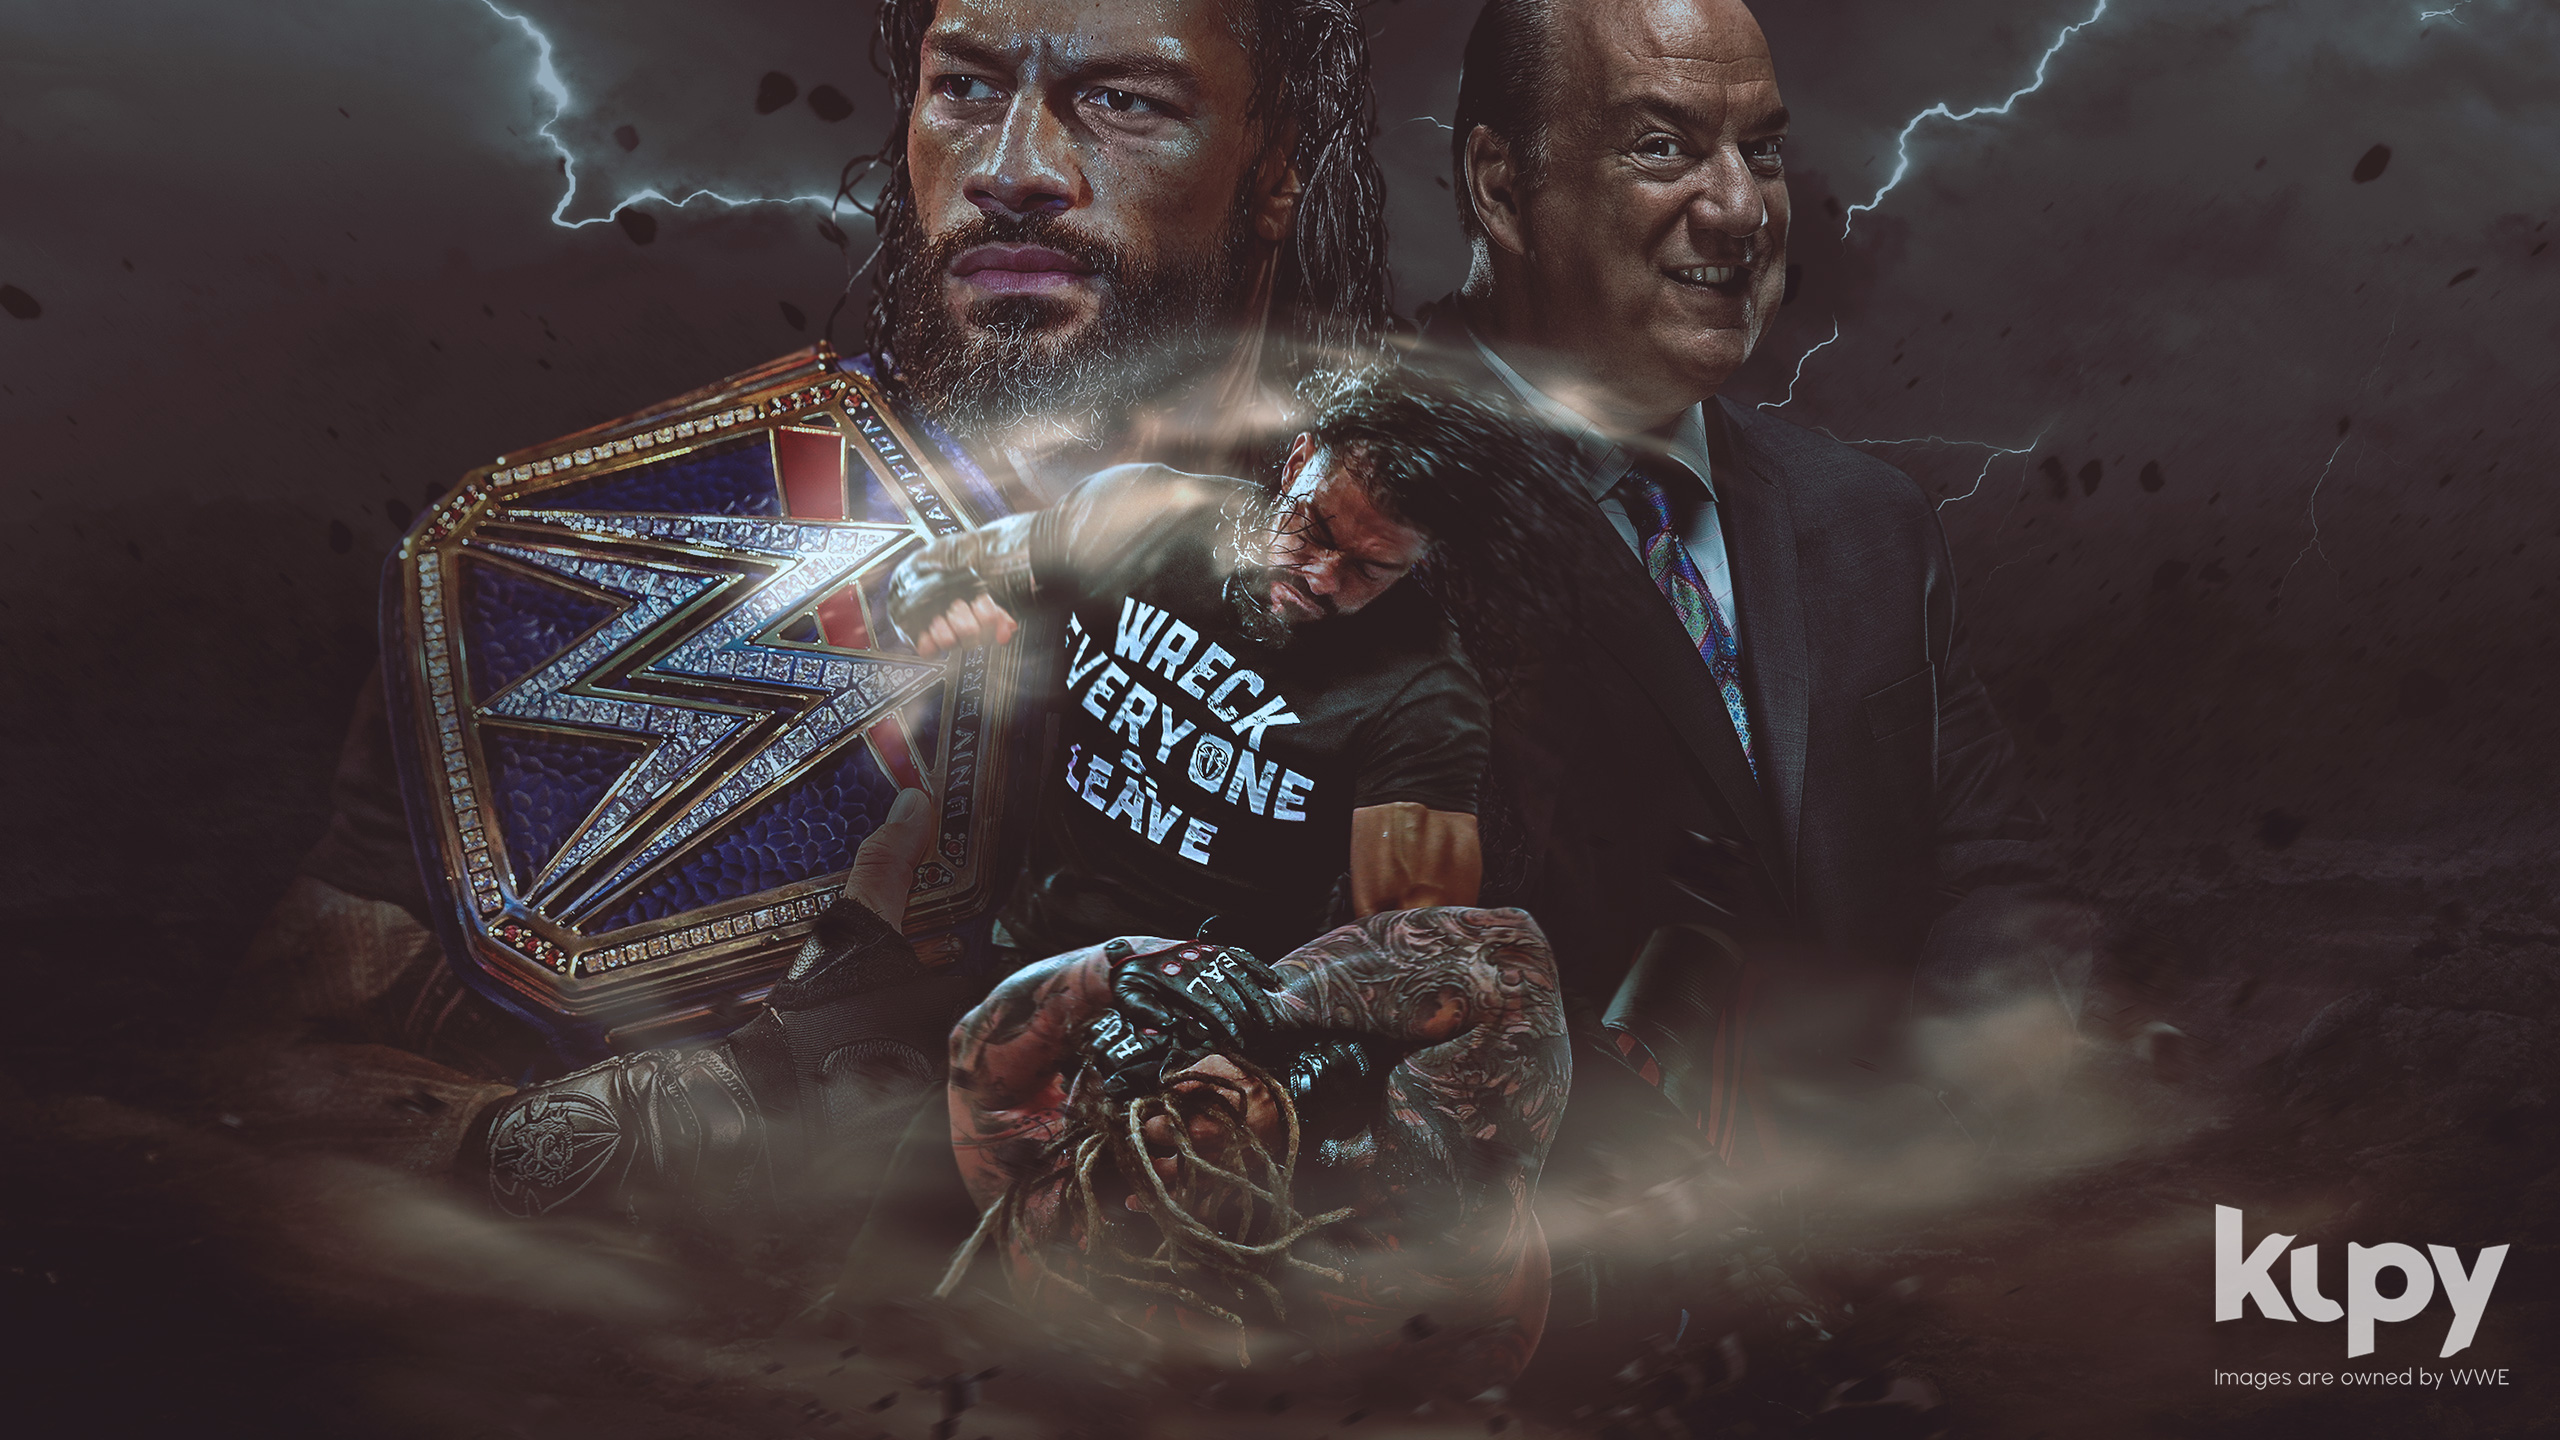 Kupy Wrestling Wallpapers The Latest Source For Your Wwe Wrestling Wallpaper Needs Mobile Hd And 4k Resolutions Available Kupy Wrestling Wallpapers The Latest Source For Your Wwe Wrestling Wallpaper Needs